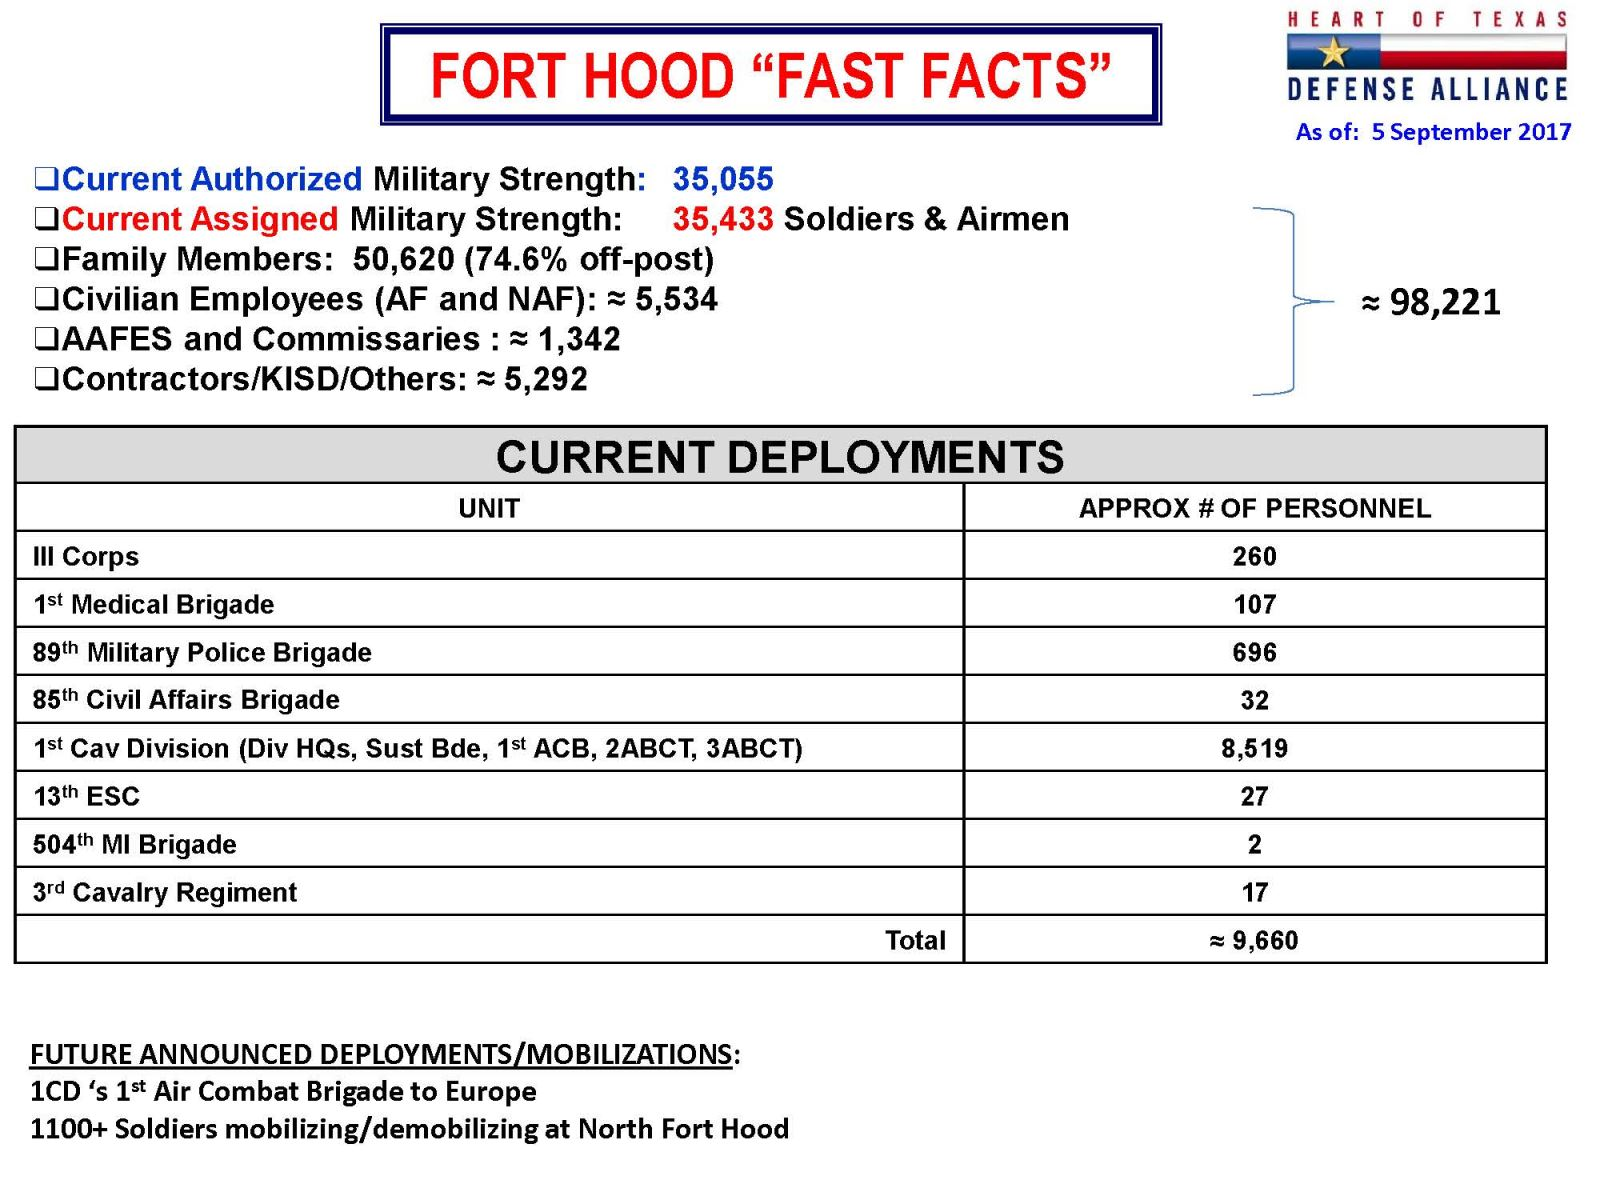 worksheet Division Fast Facts division fast facts cartesian coordinates worksheet 100 fort hood september 2017 fa